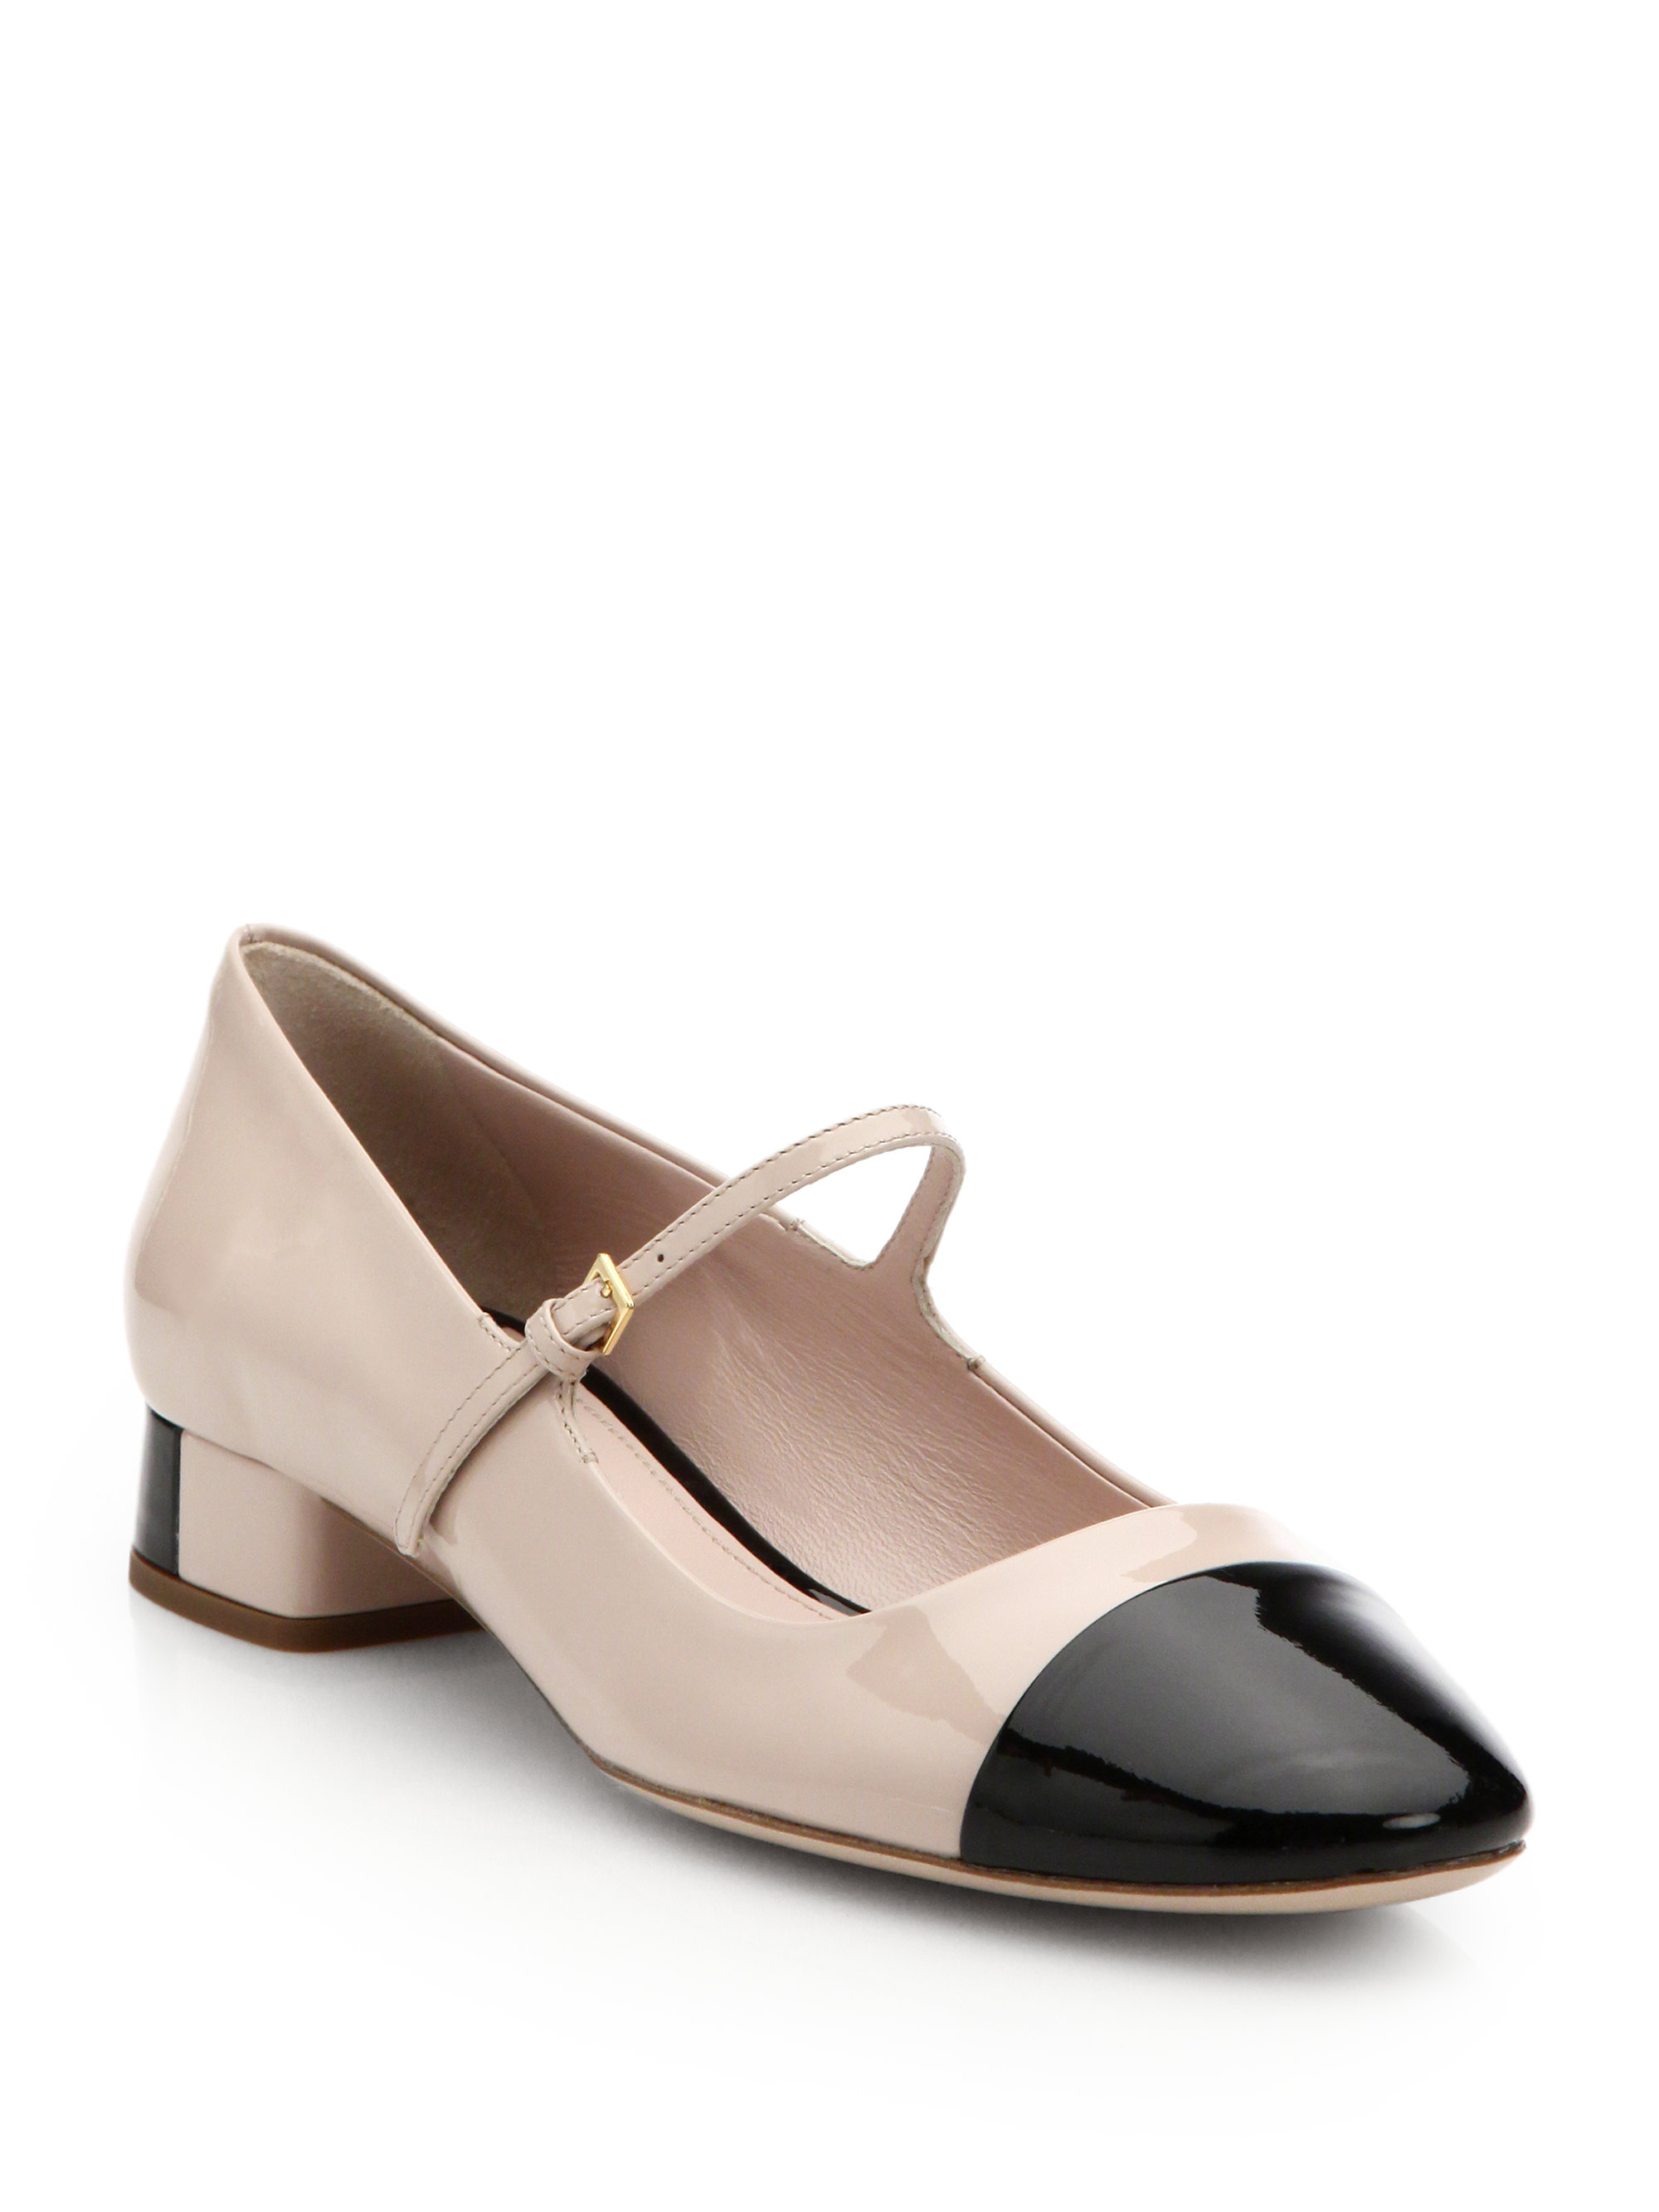 Lyst - Miu Miu Bicolor Patent Leather Mary Jane Pumps in Natural